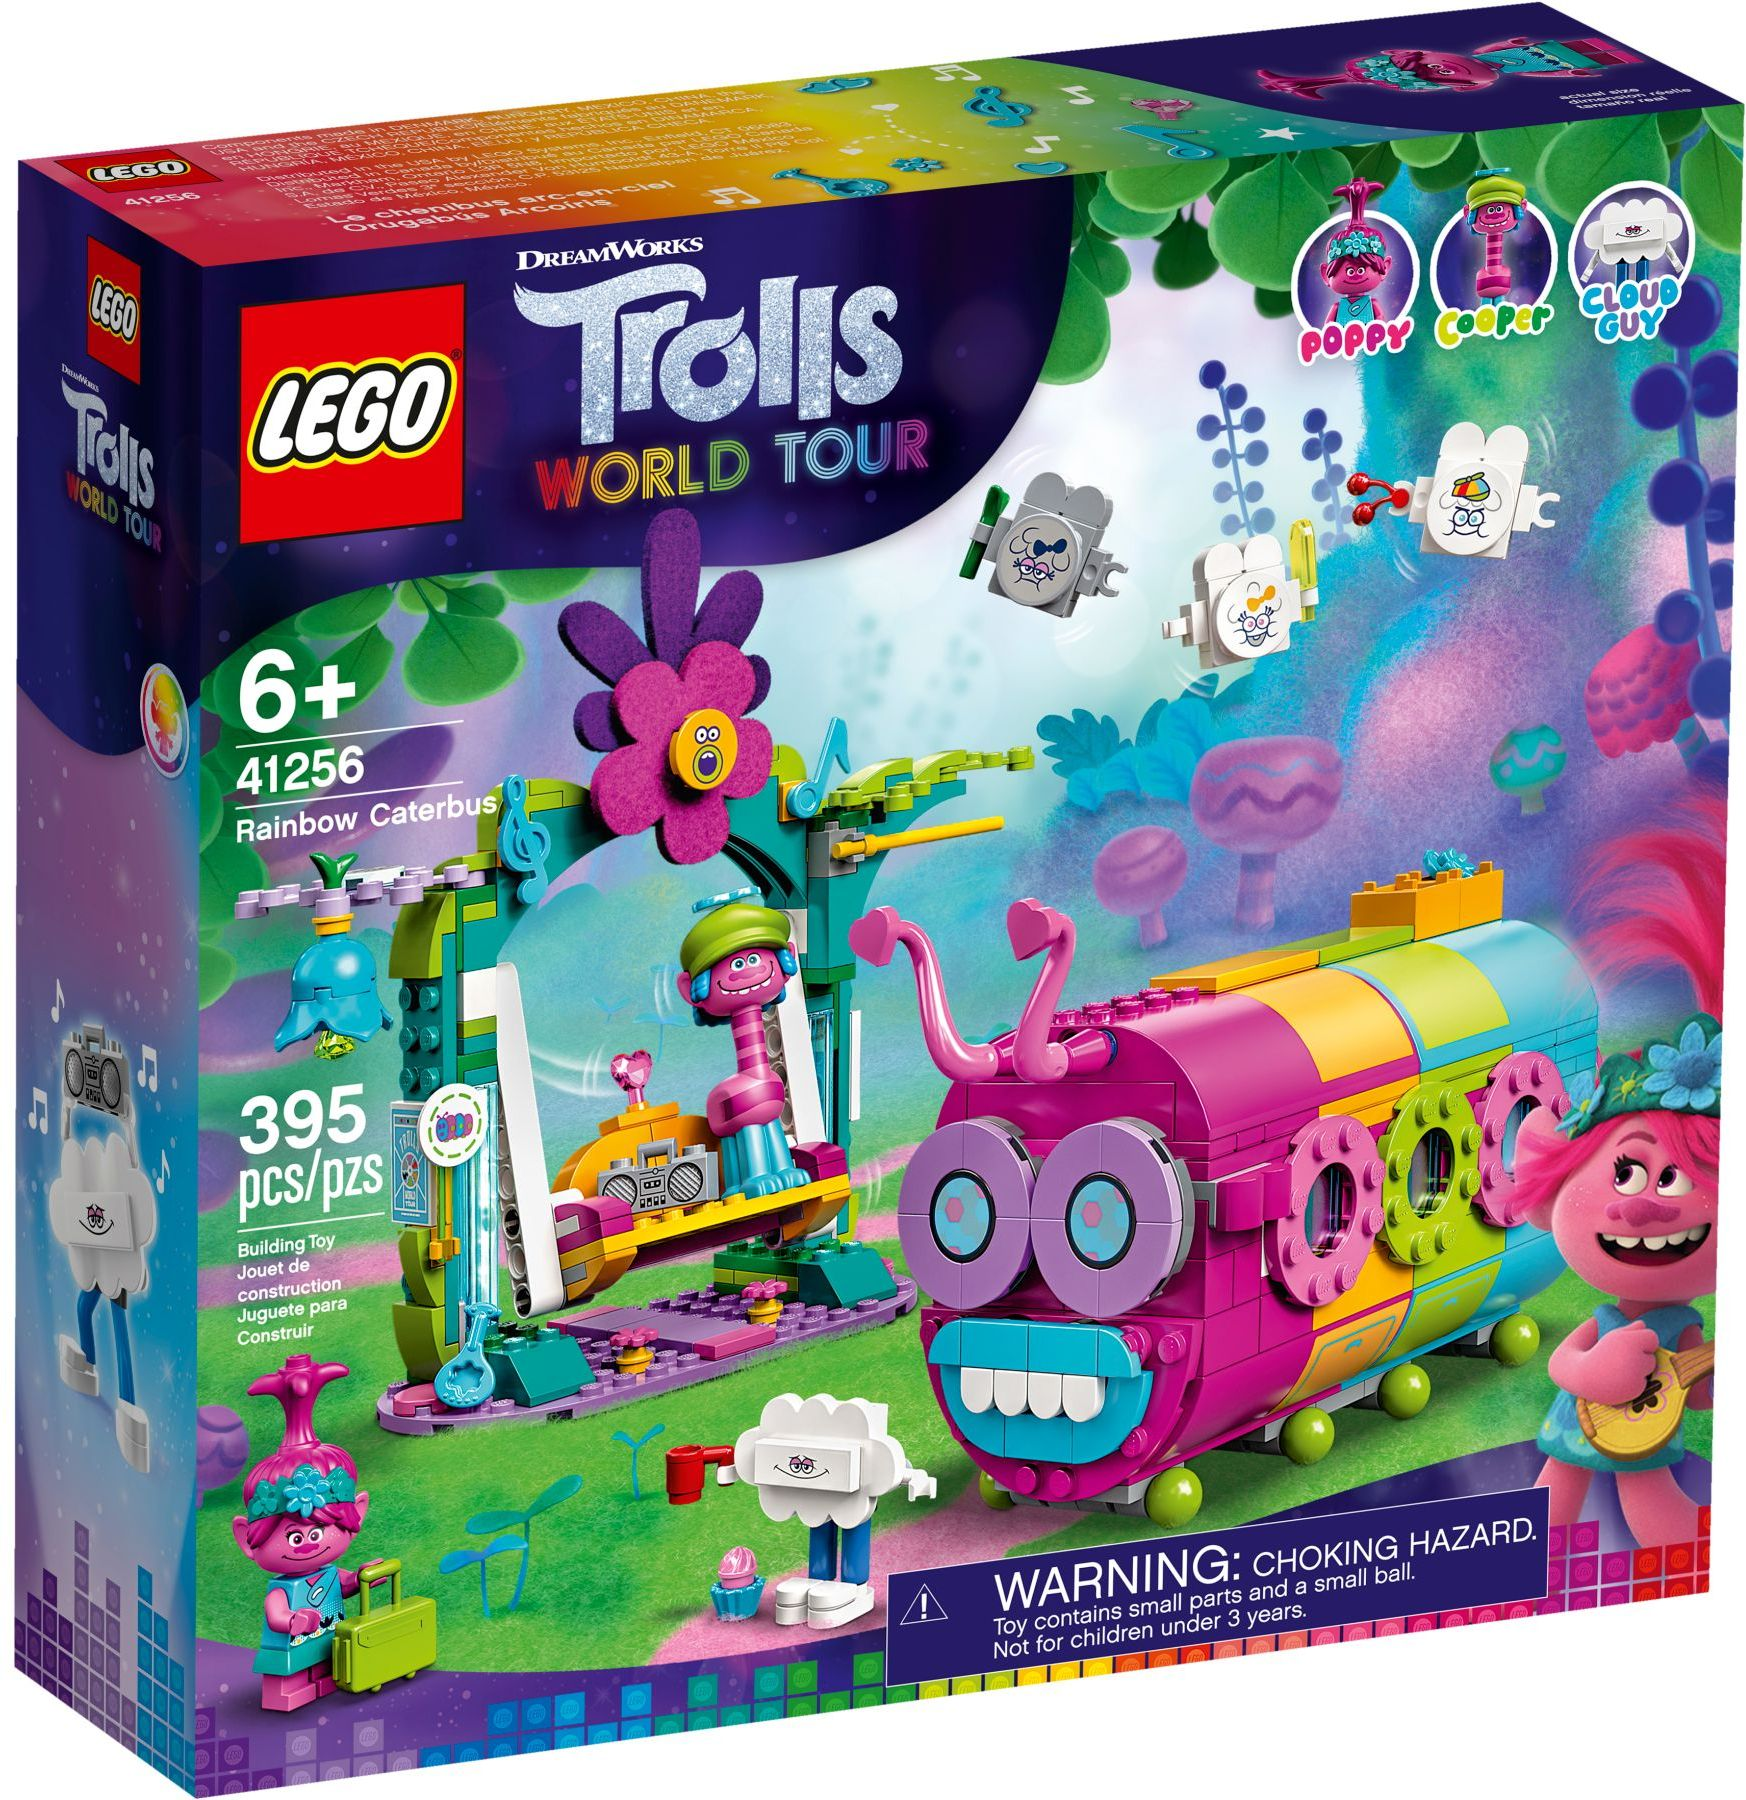 LEGO Trolls World Tour Sets: 41256 Rainbow Caterbus NEW